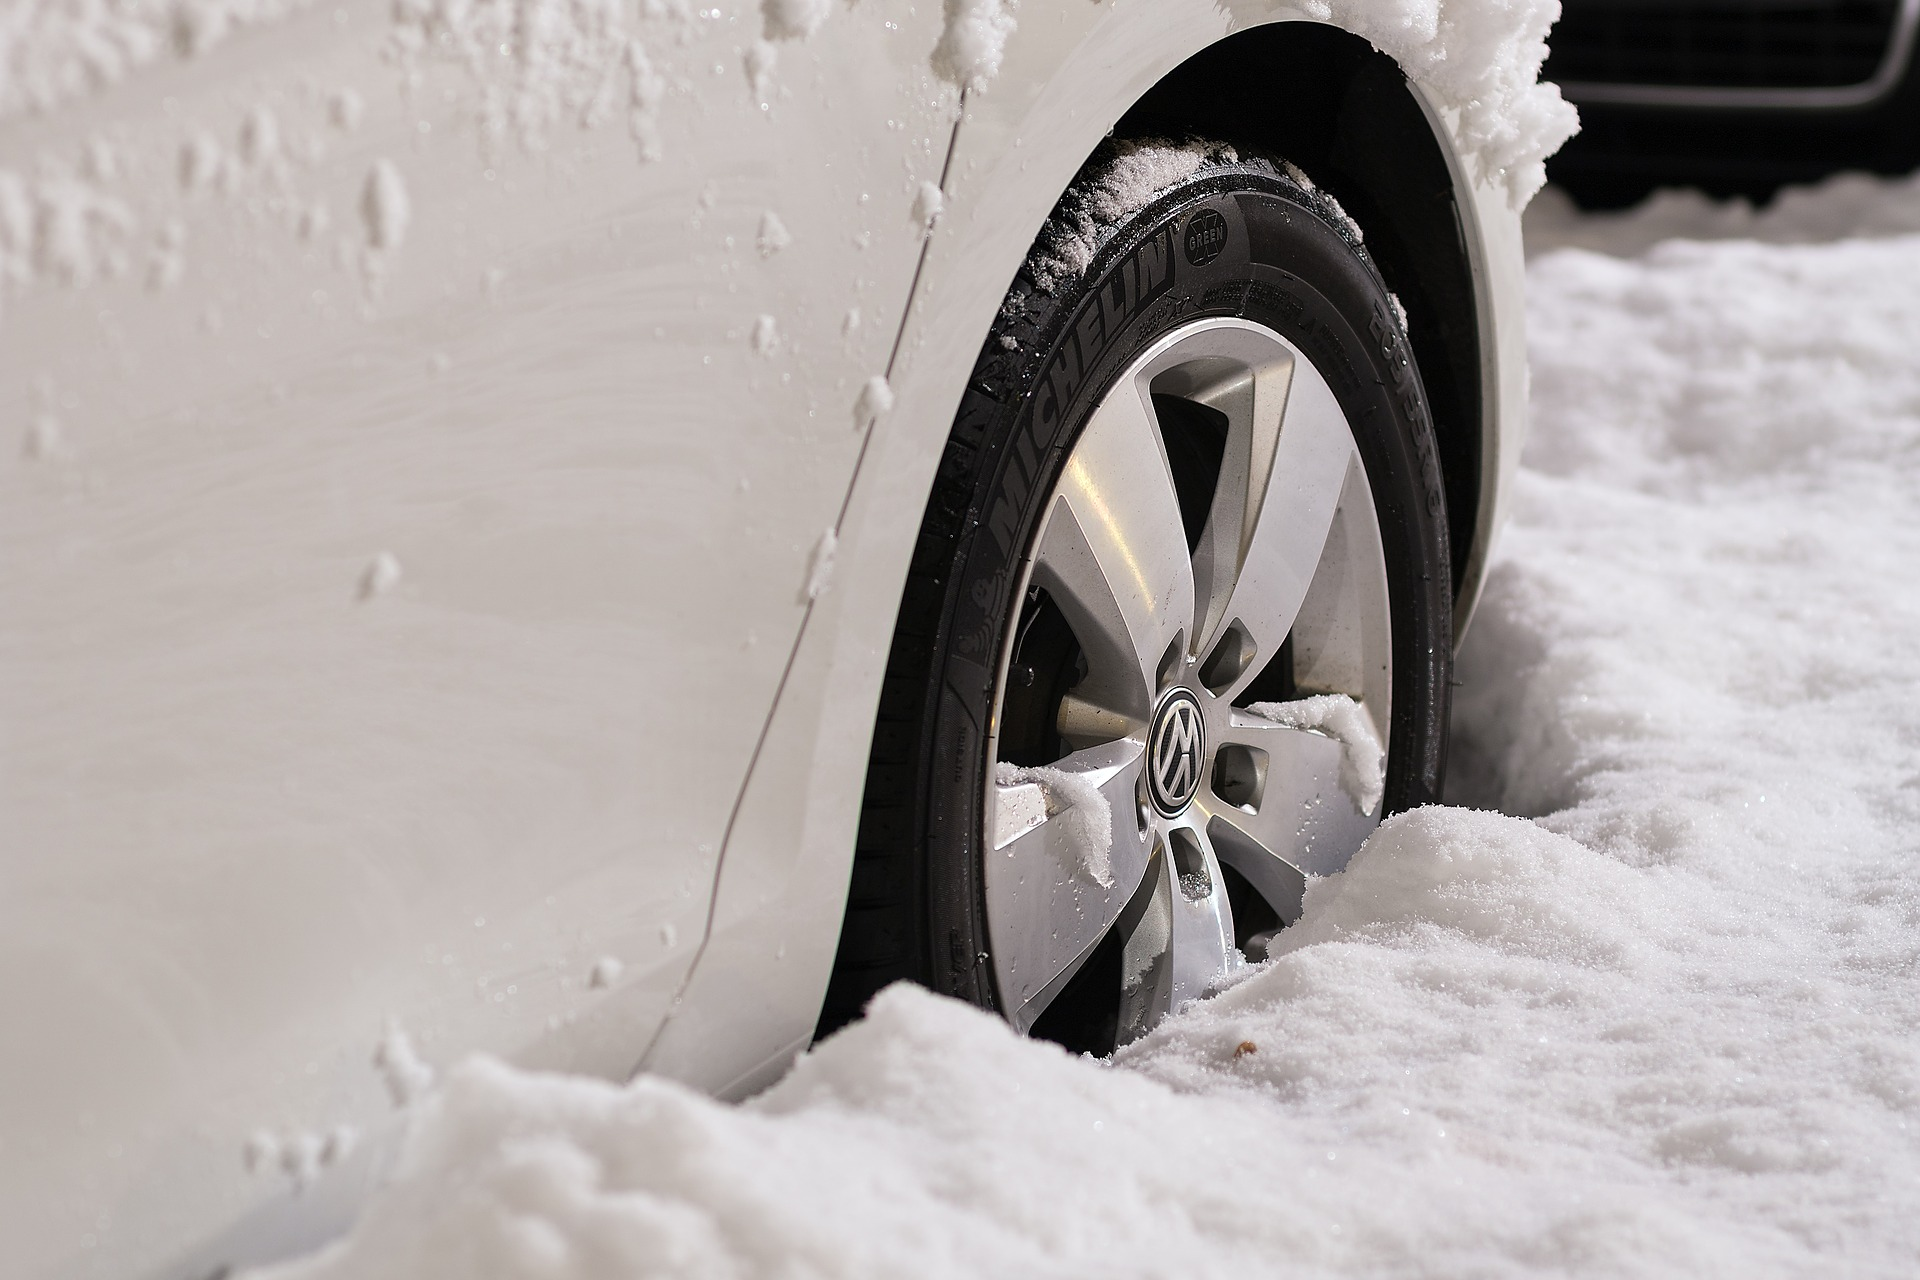 Top tips for driving in extreme winter weather - insureFLEET